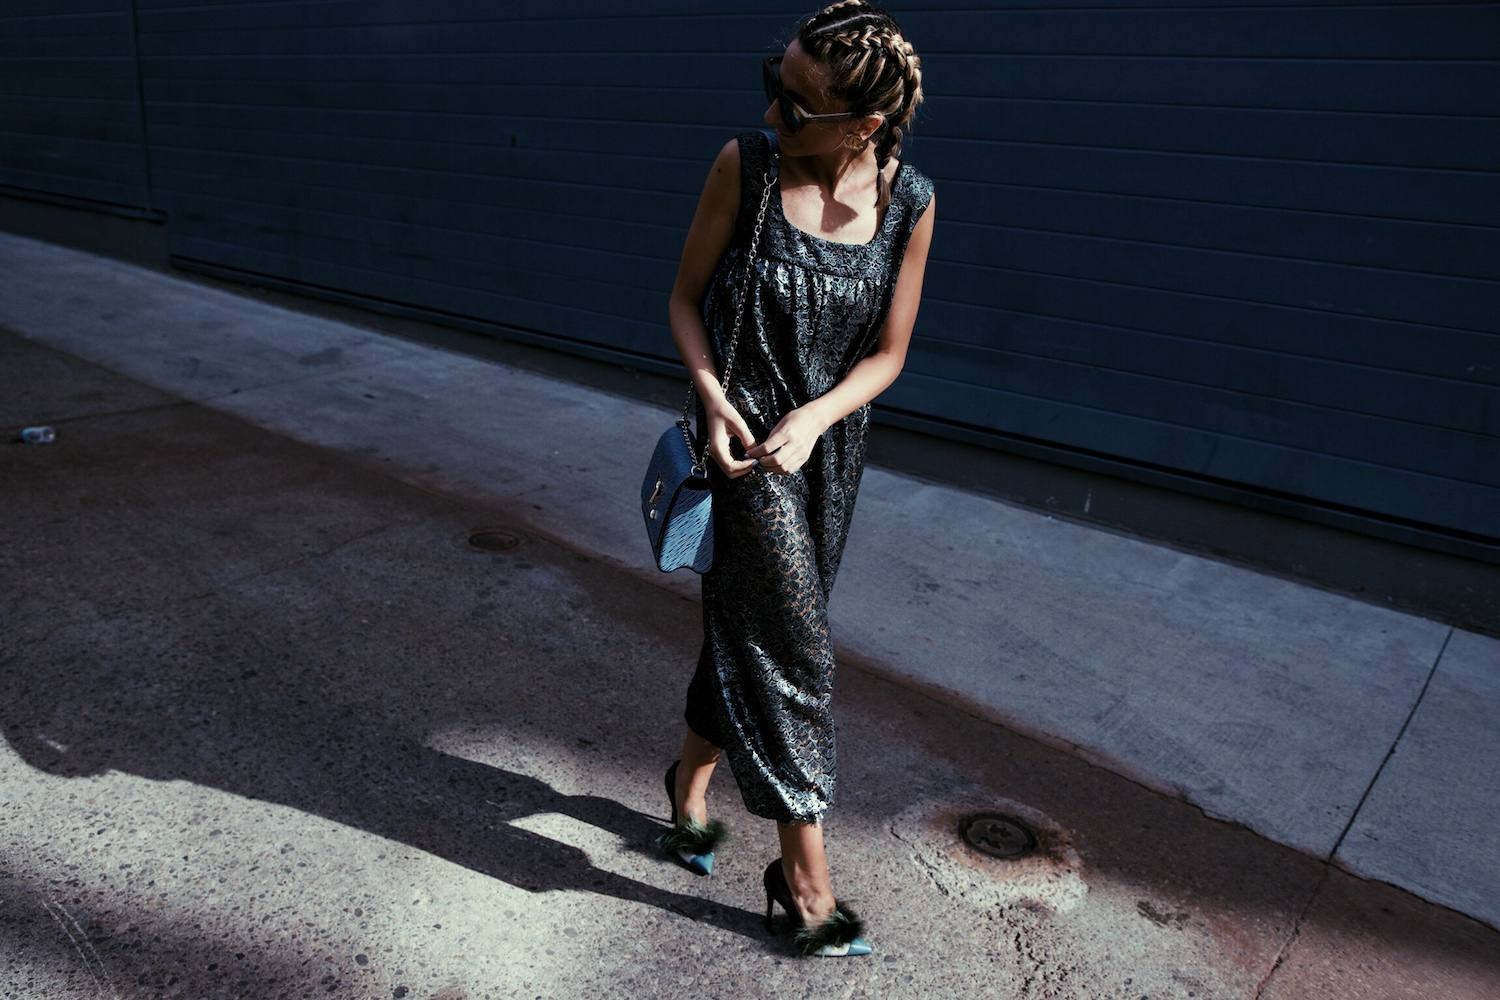 Chanel Jumpsuit, Fendi Bag Bug Shoes, Louis Vuitton Epi Leather Twist, Boxer Braids 04